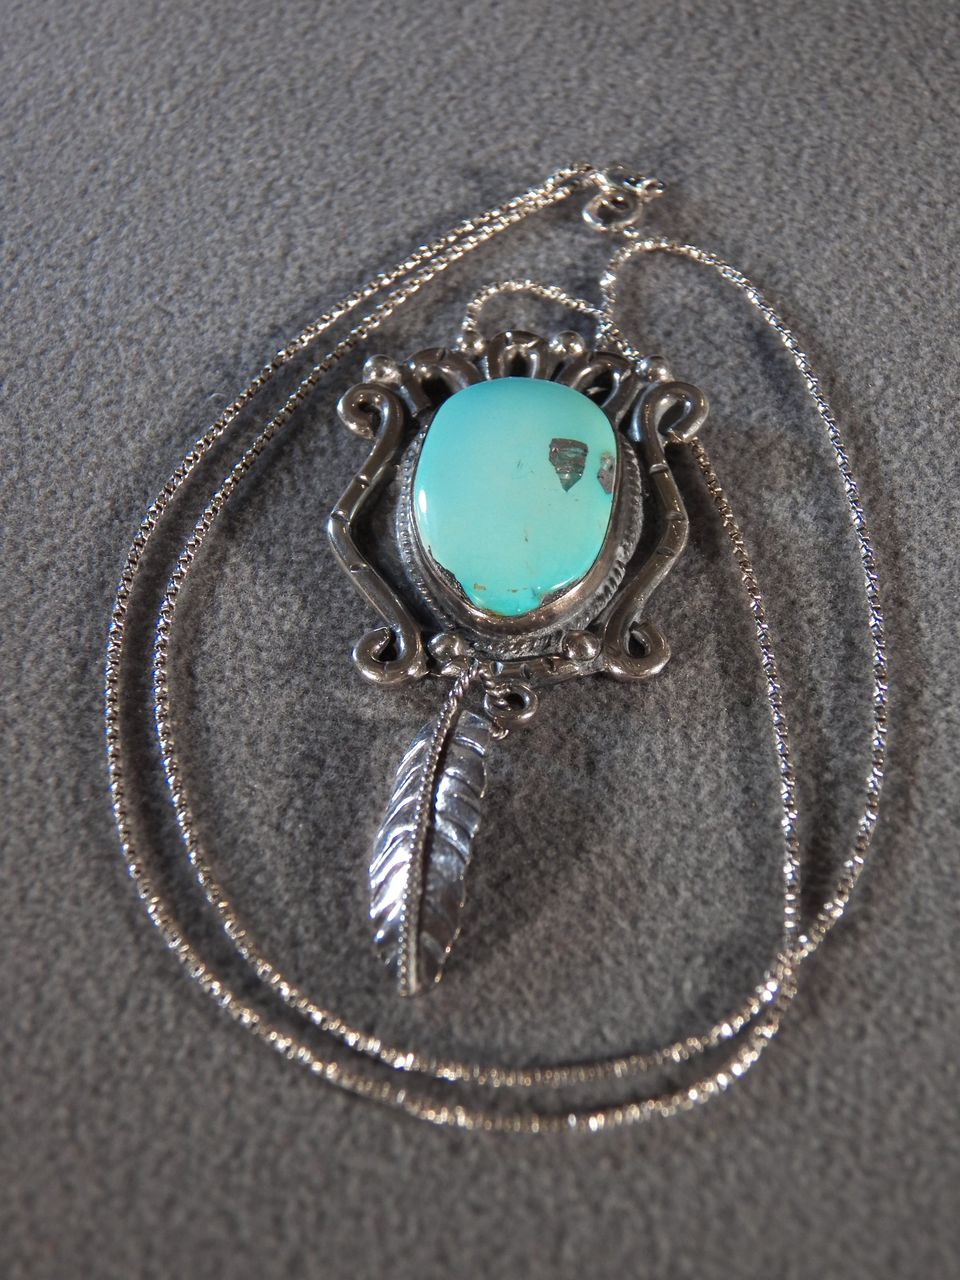 Vintage Sterling Silver Large Oval Turquoise Fancy Southwest Design Pendant Charm Necklace Chain